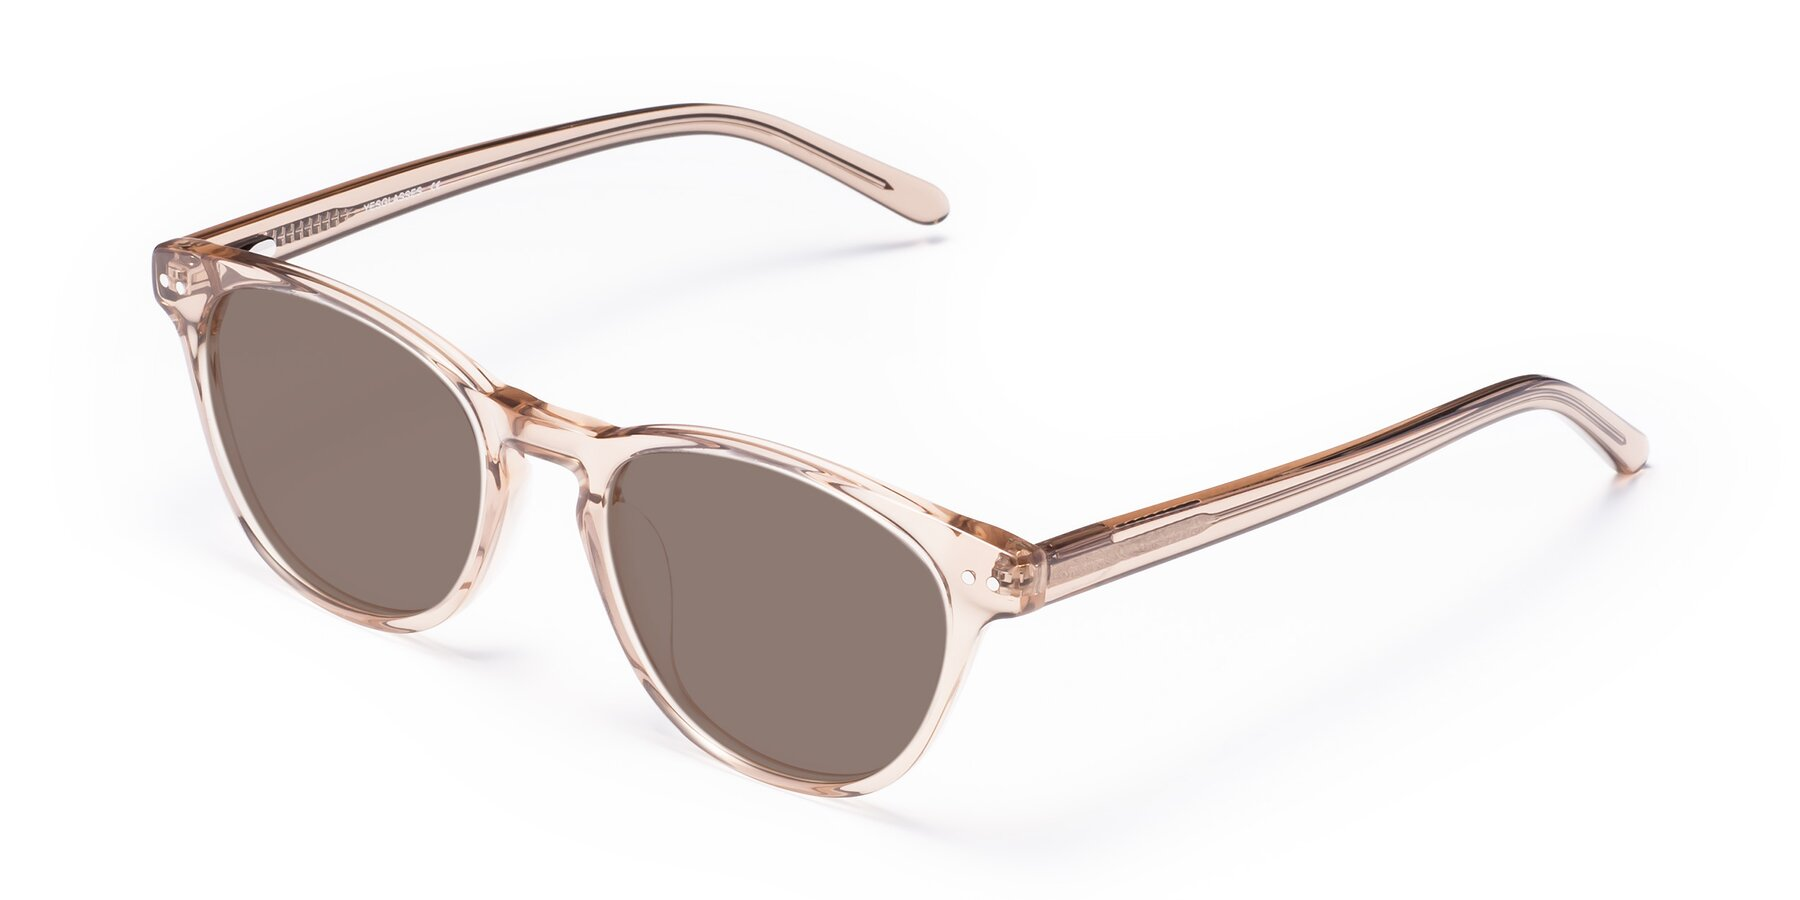 Angle of Blaze in light Brown with Medium Brown Tinted Lenses